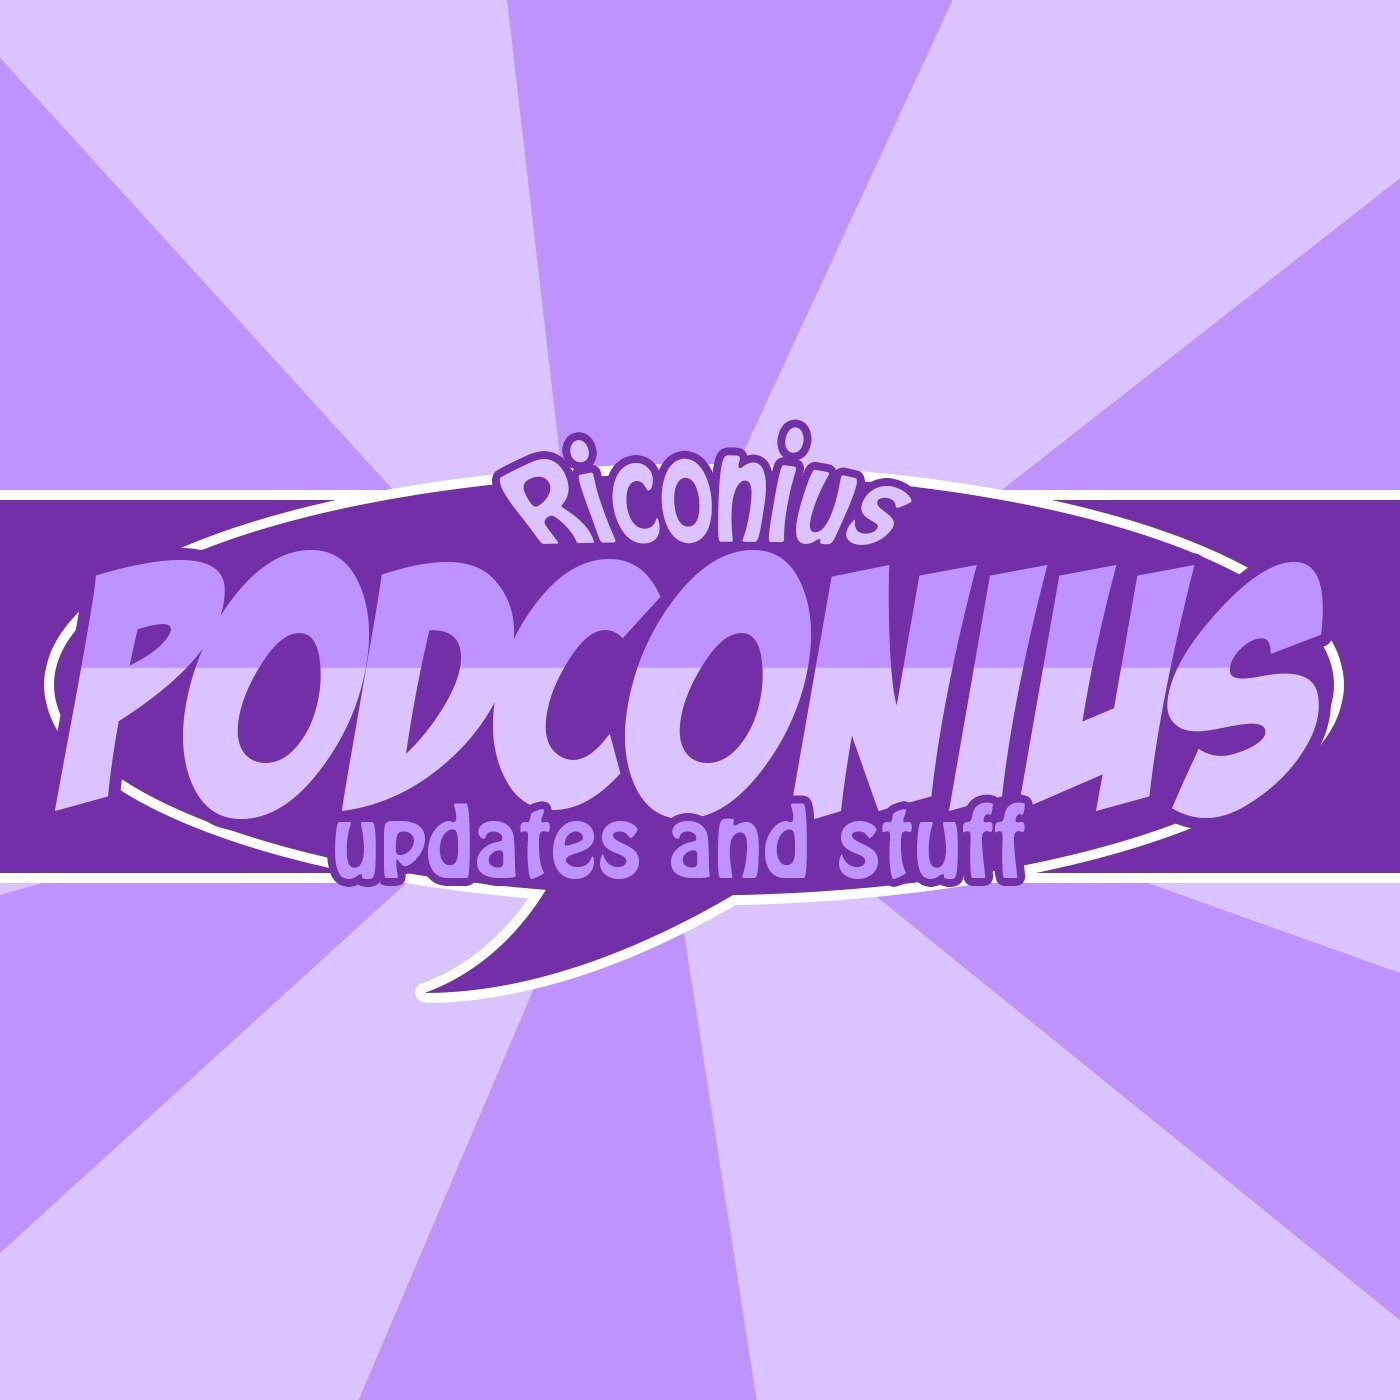 Podconius